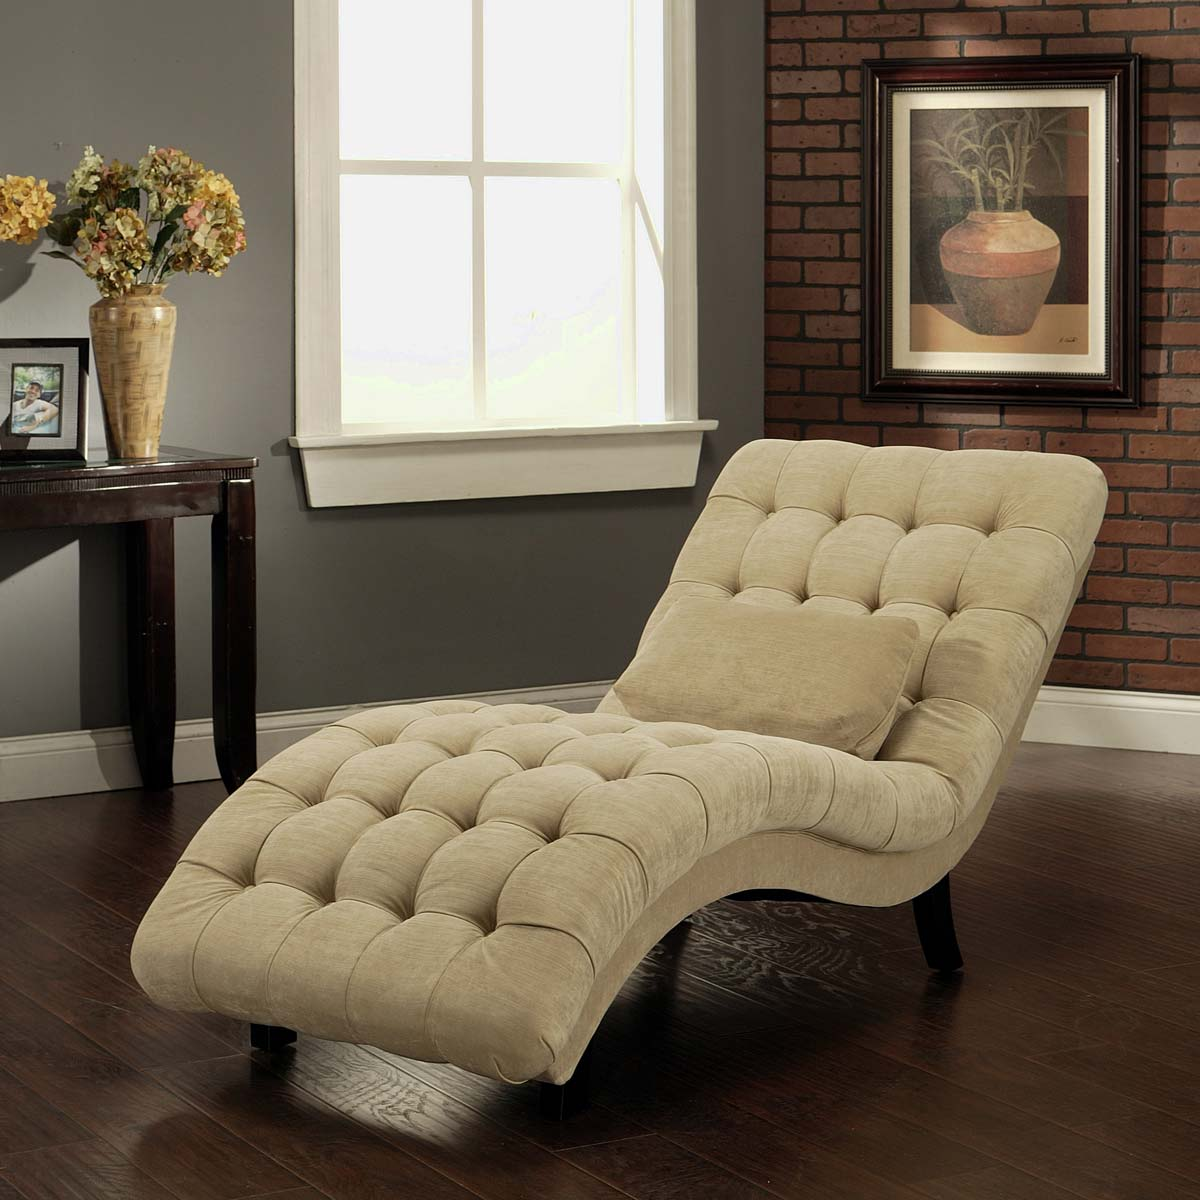 abbyson living thatcher fabric rocking chair in beige desk replacement wheels soho cream chaise ab hs sf 250 bge